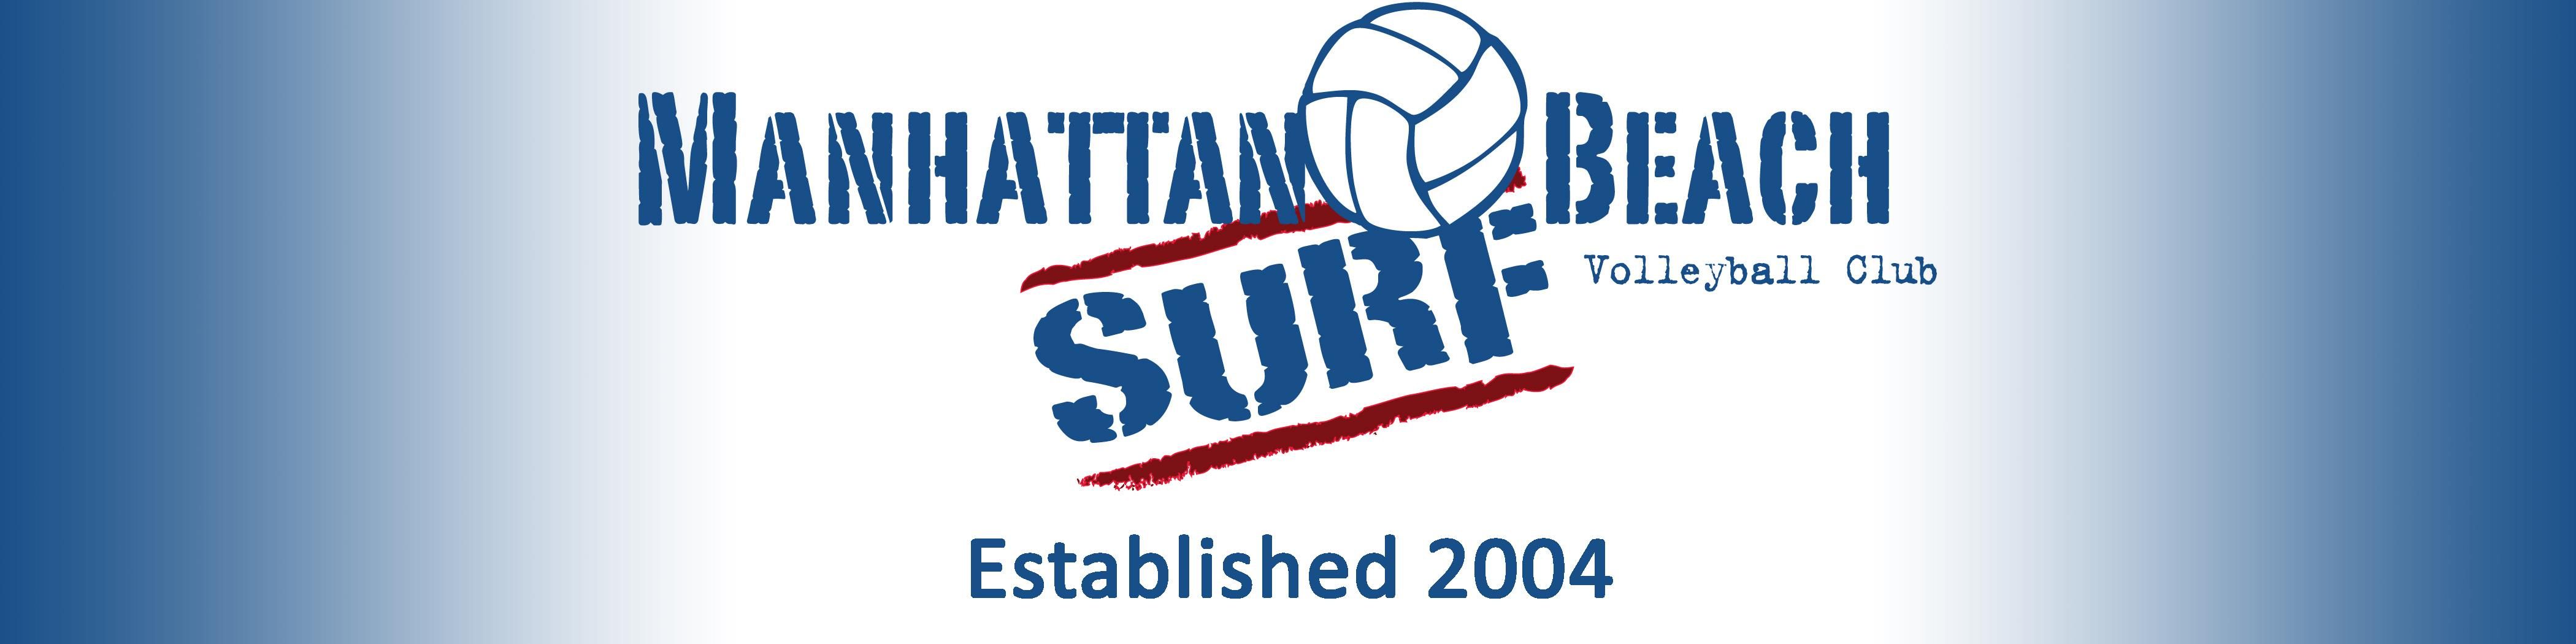 Manhattan beach surf web banner